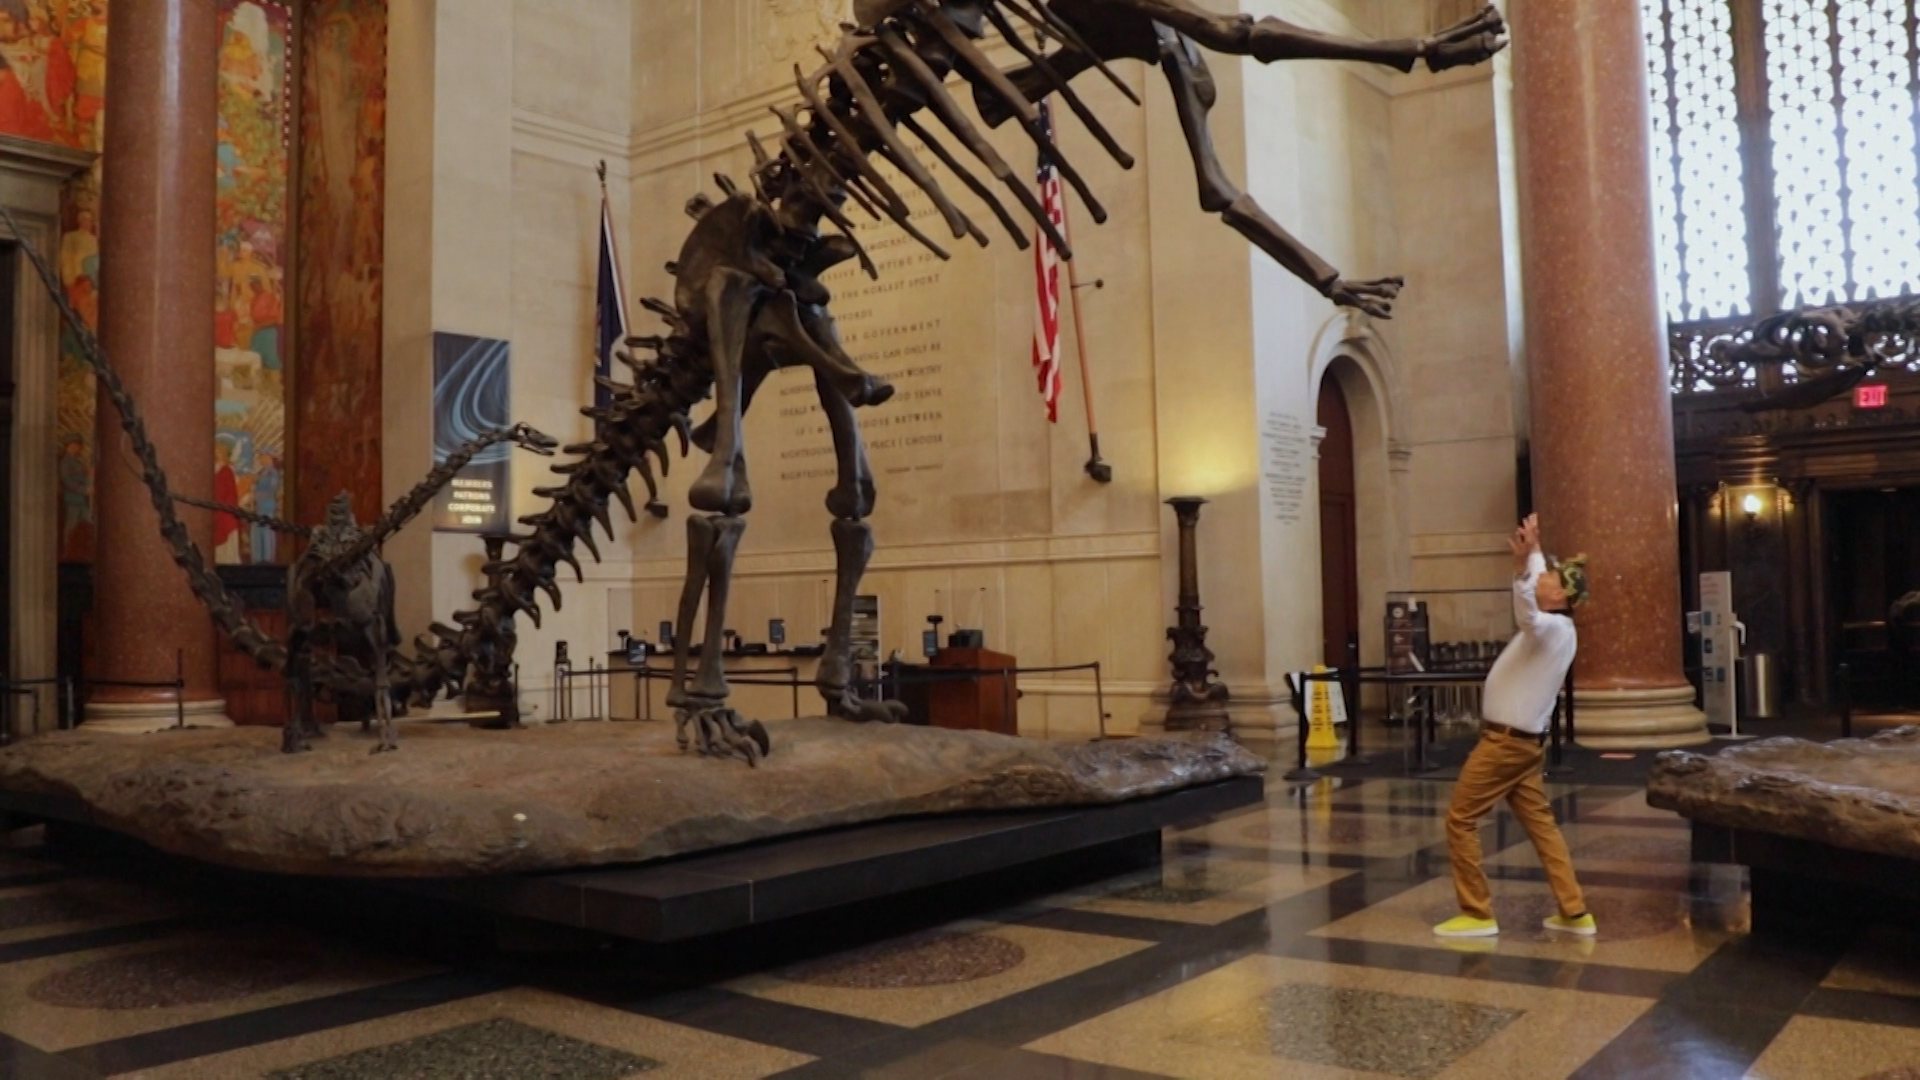 A dinosaur model in bones stands upright in a museum exhibition